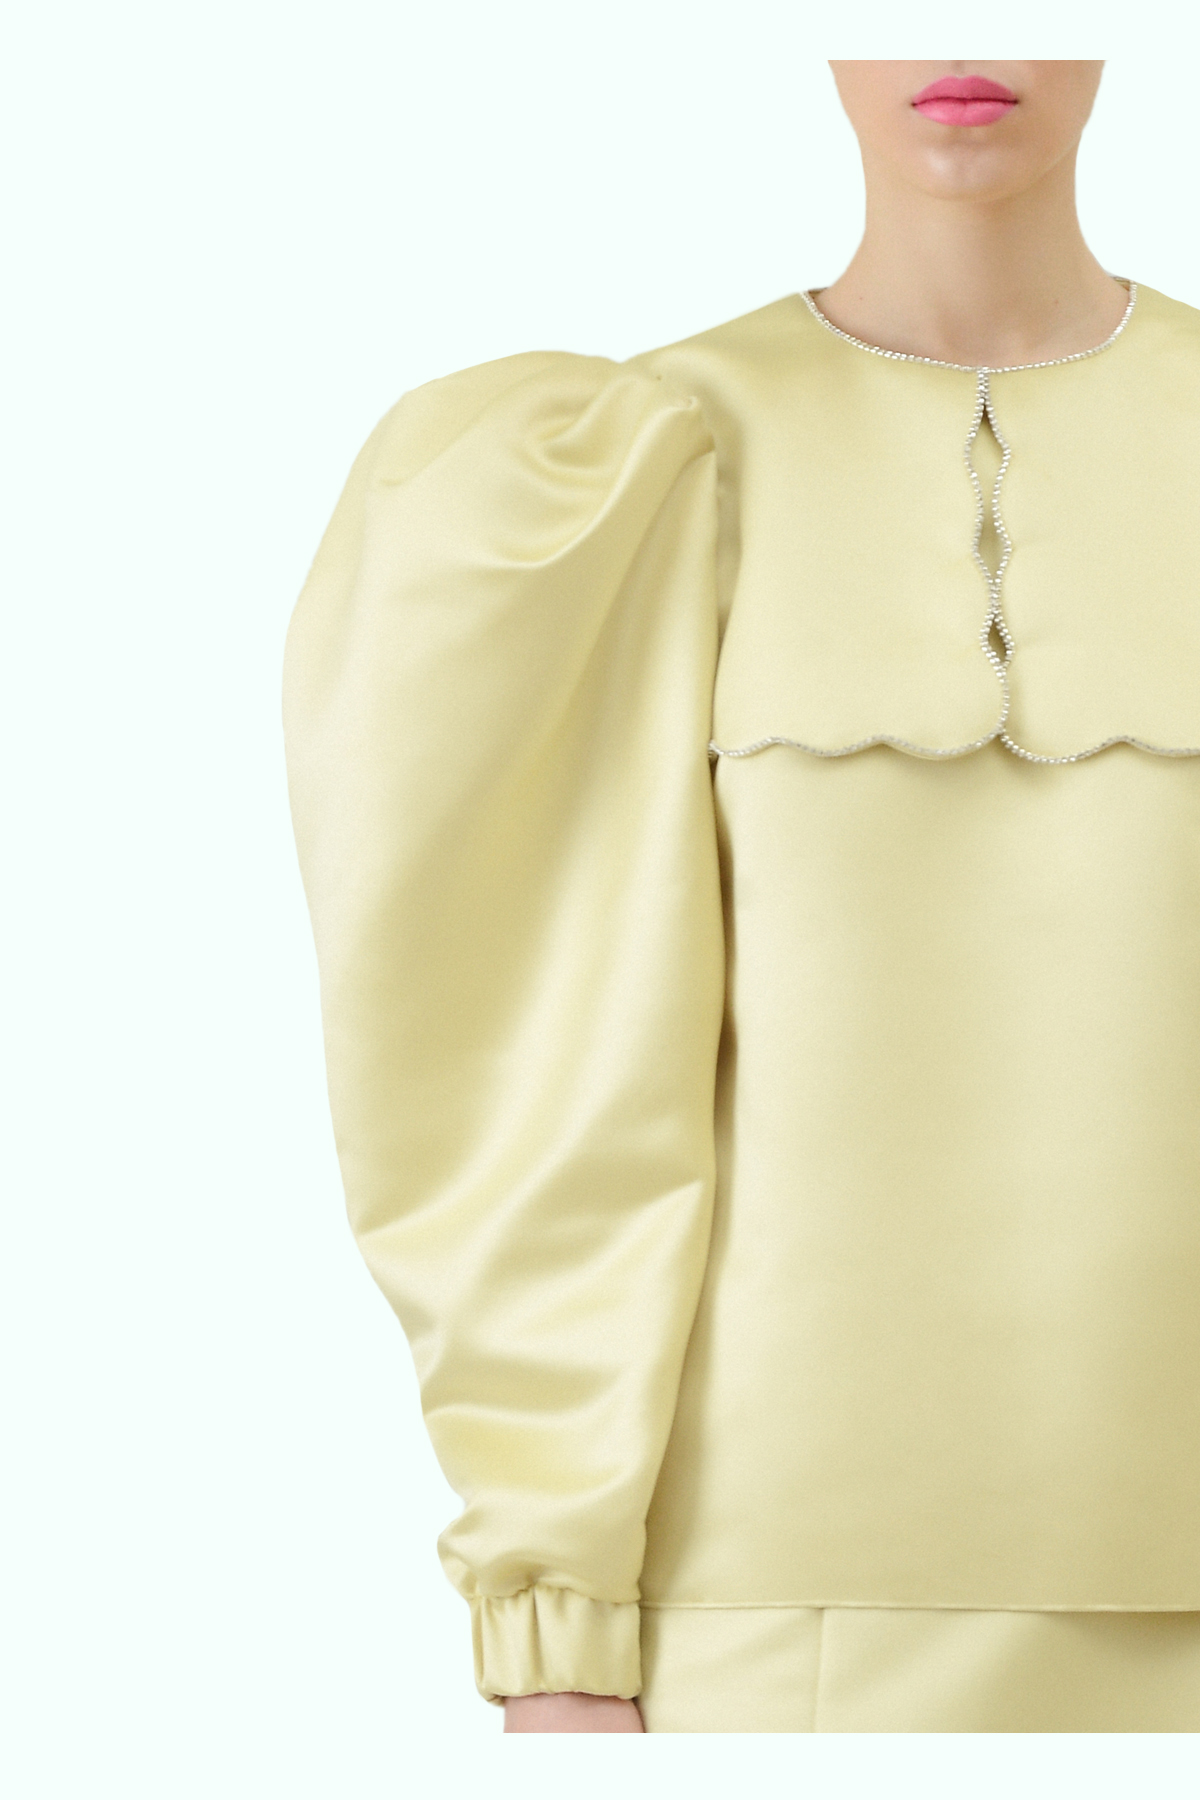 Puff sleeve yellow top with puritan collar and embroidered crystals 2